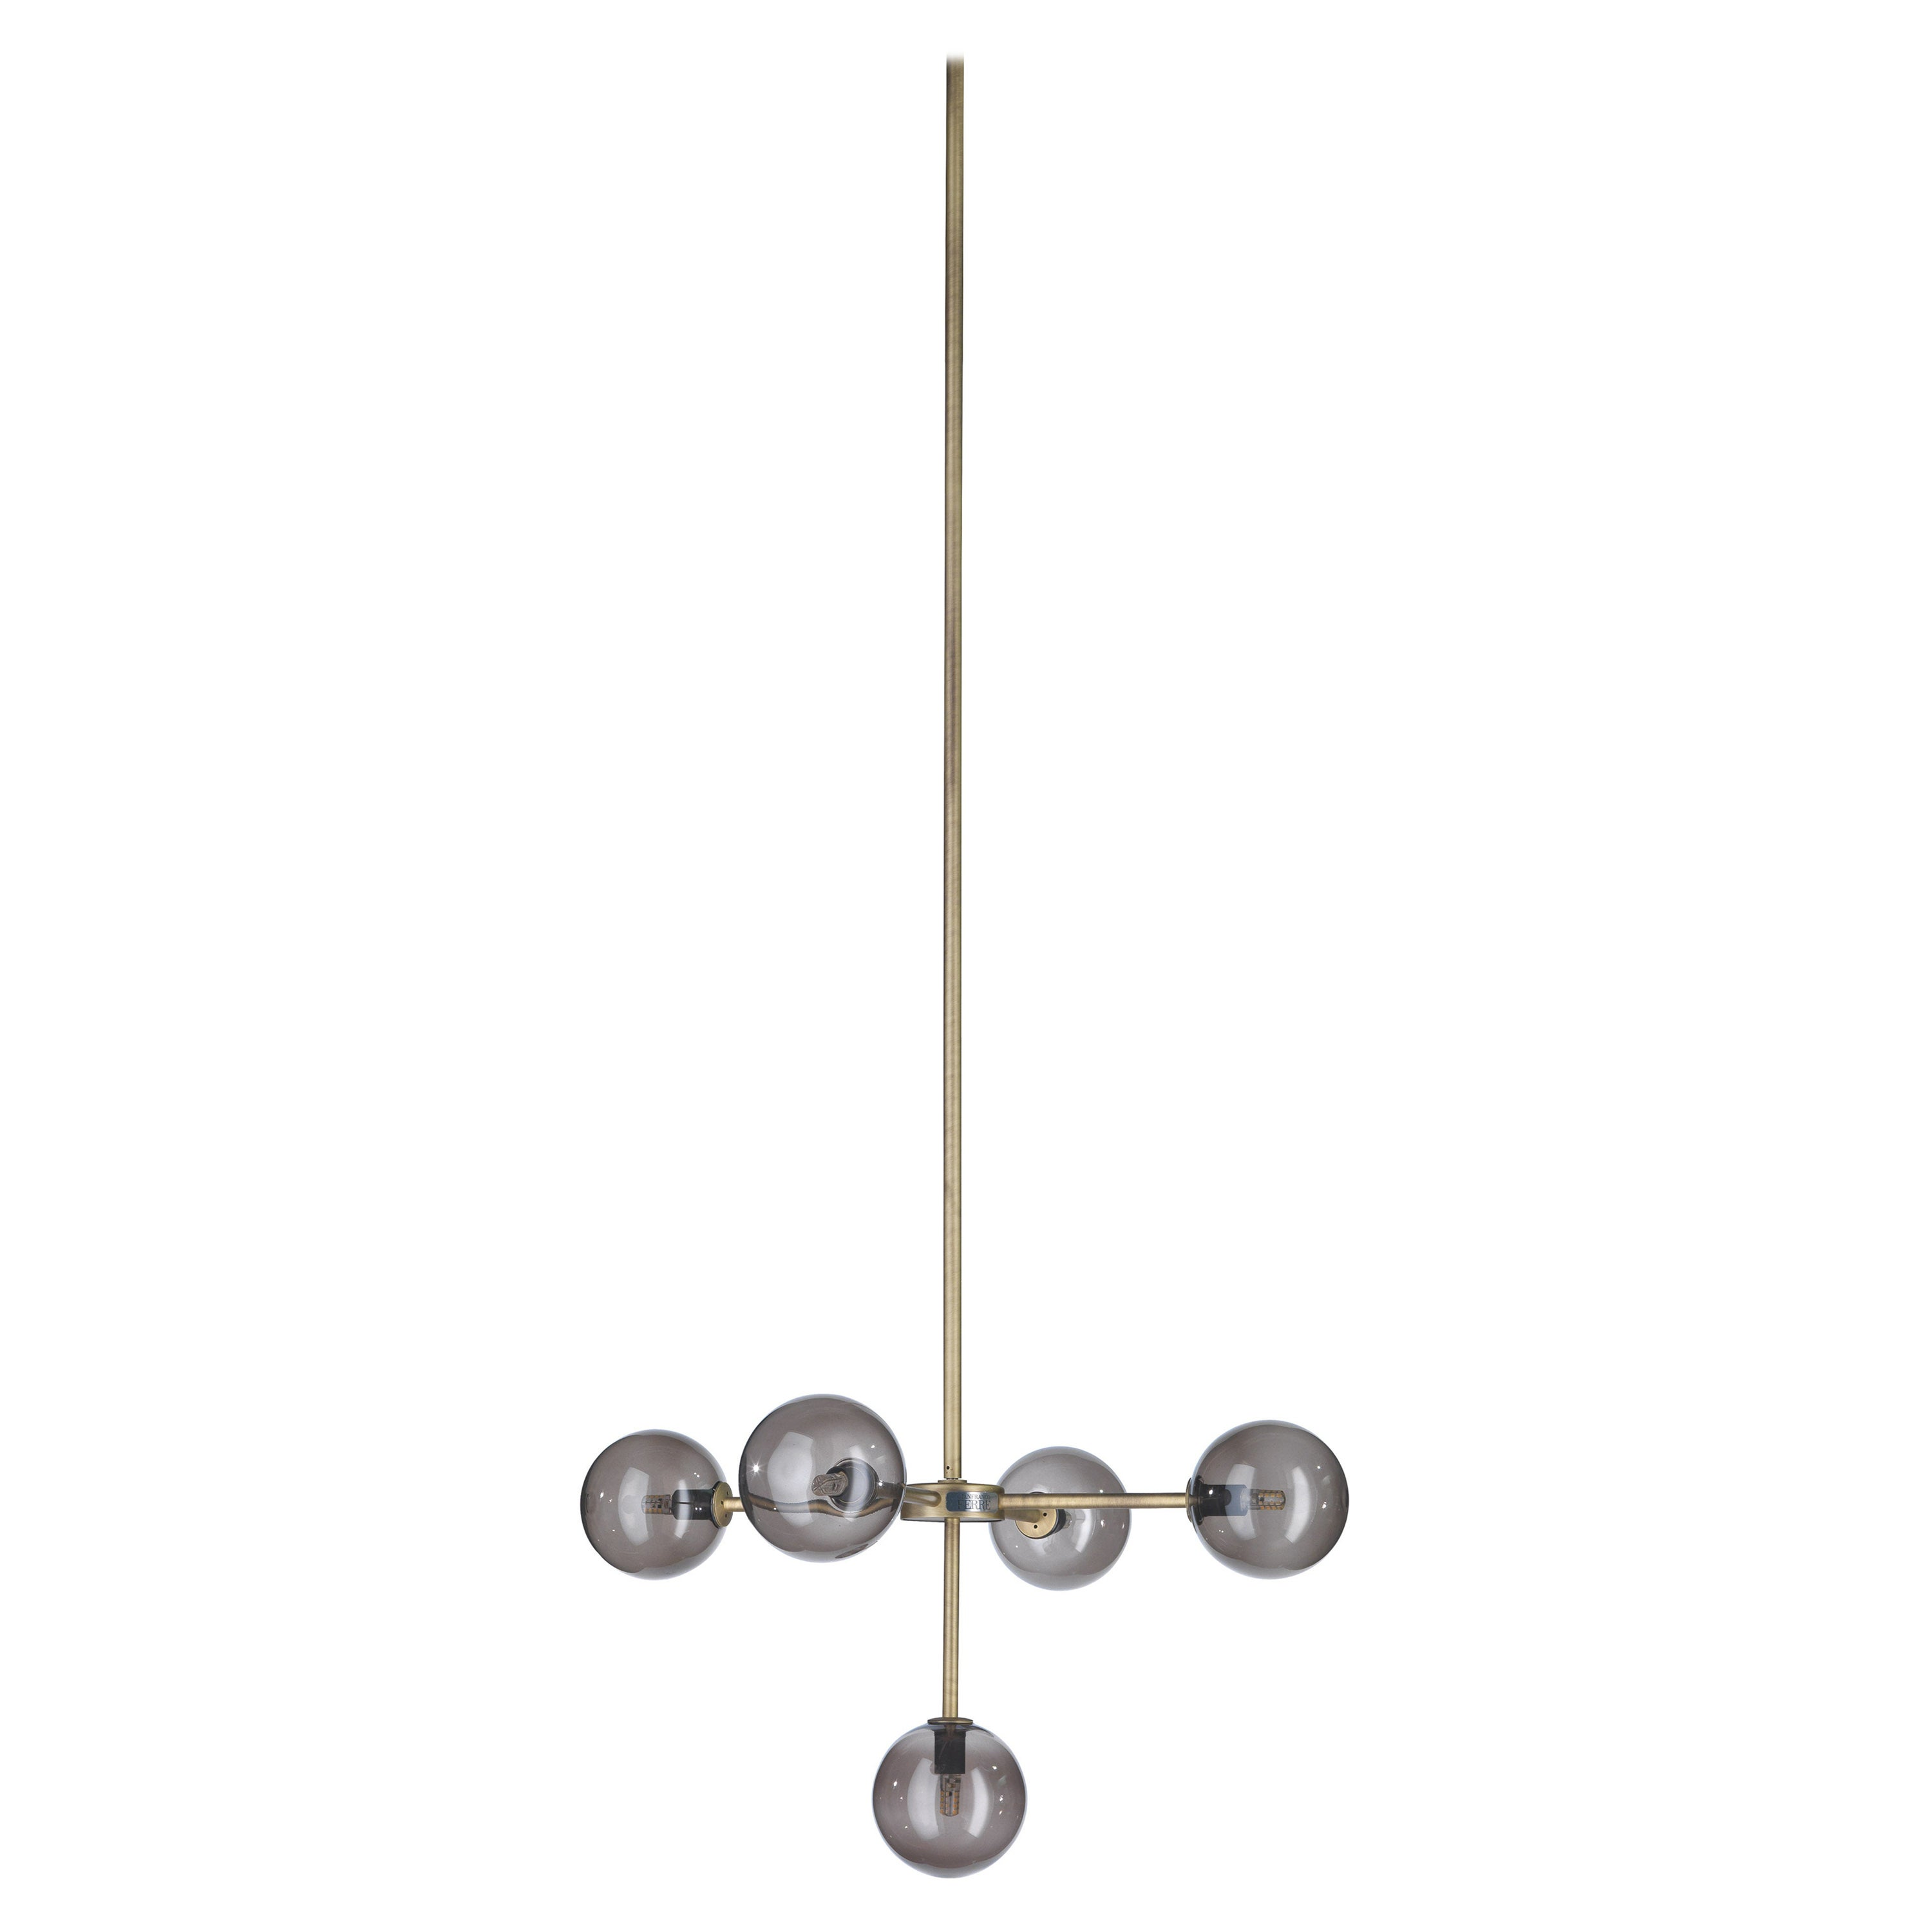 Gianfranco Ferré Home Douglas Chandelier in Brass and Glass Shade